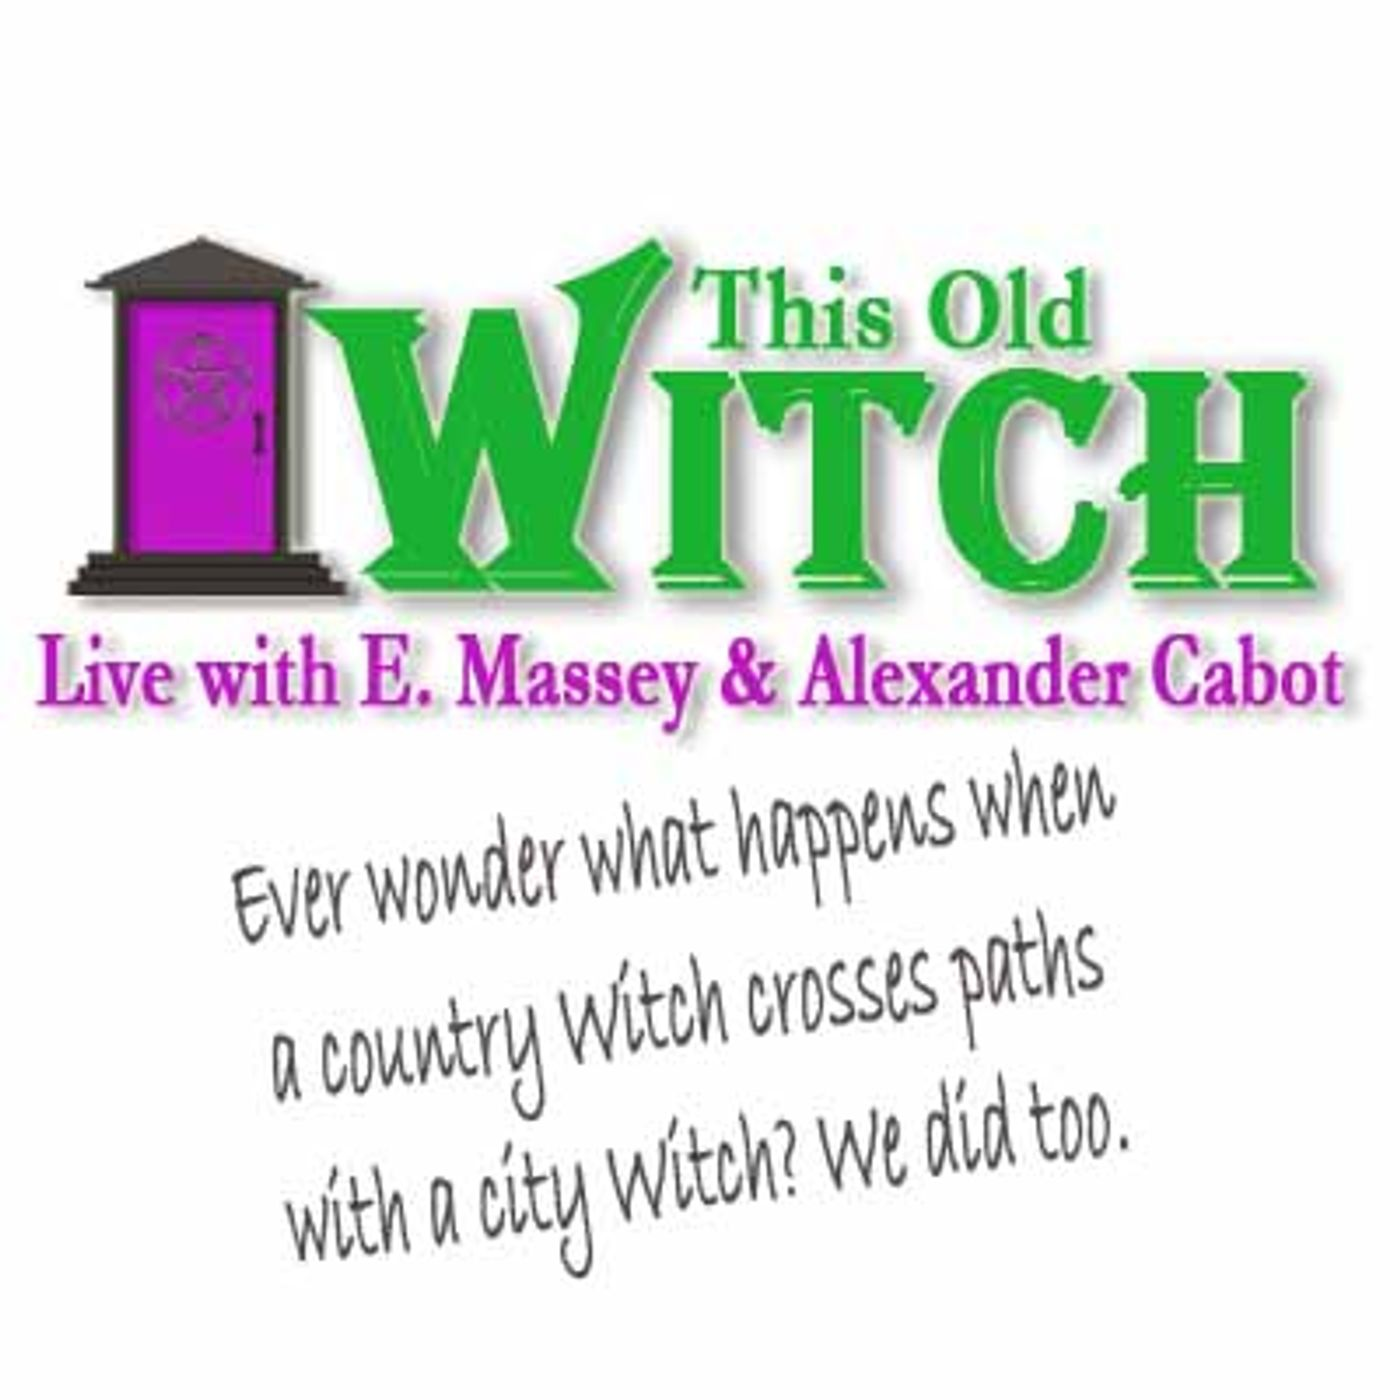 This Old Witch Podcast